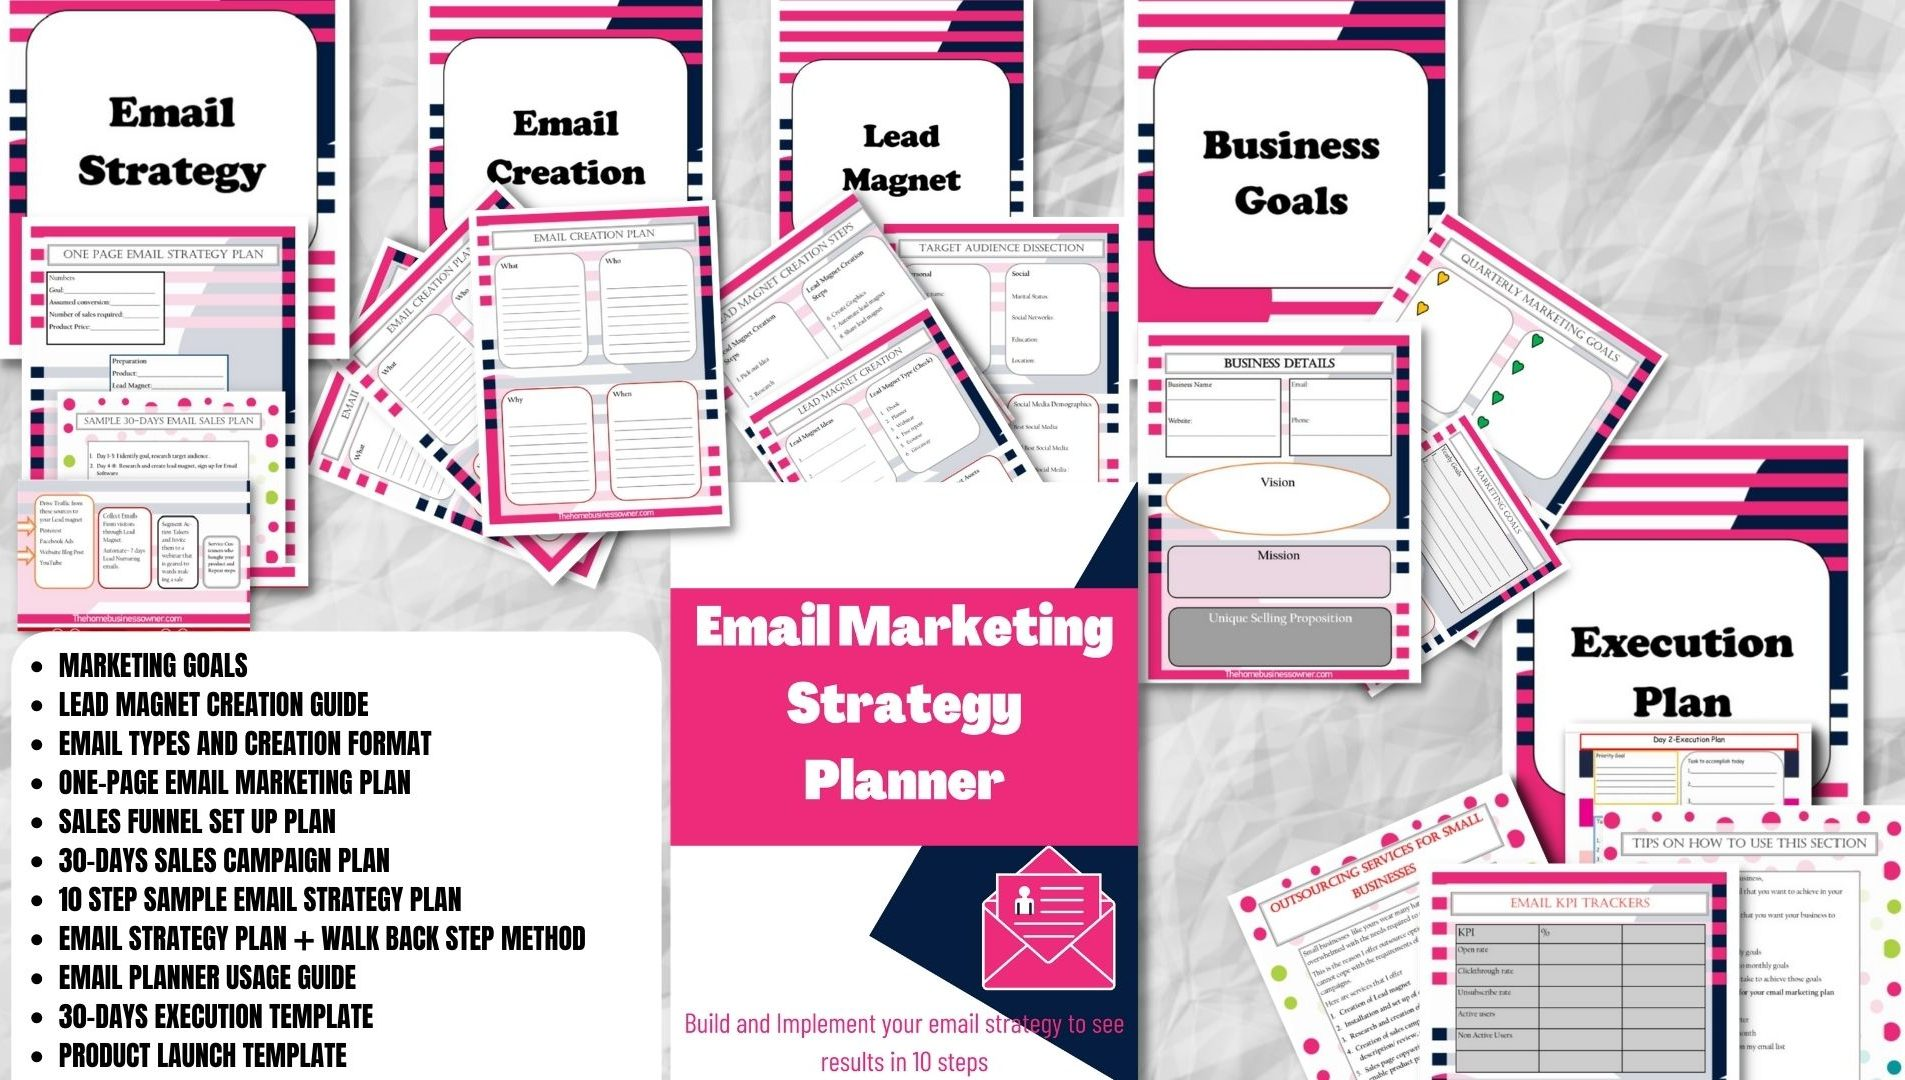 Email Marketing Strategy Planner